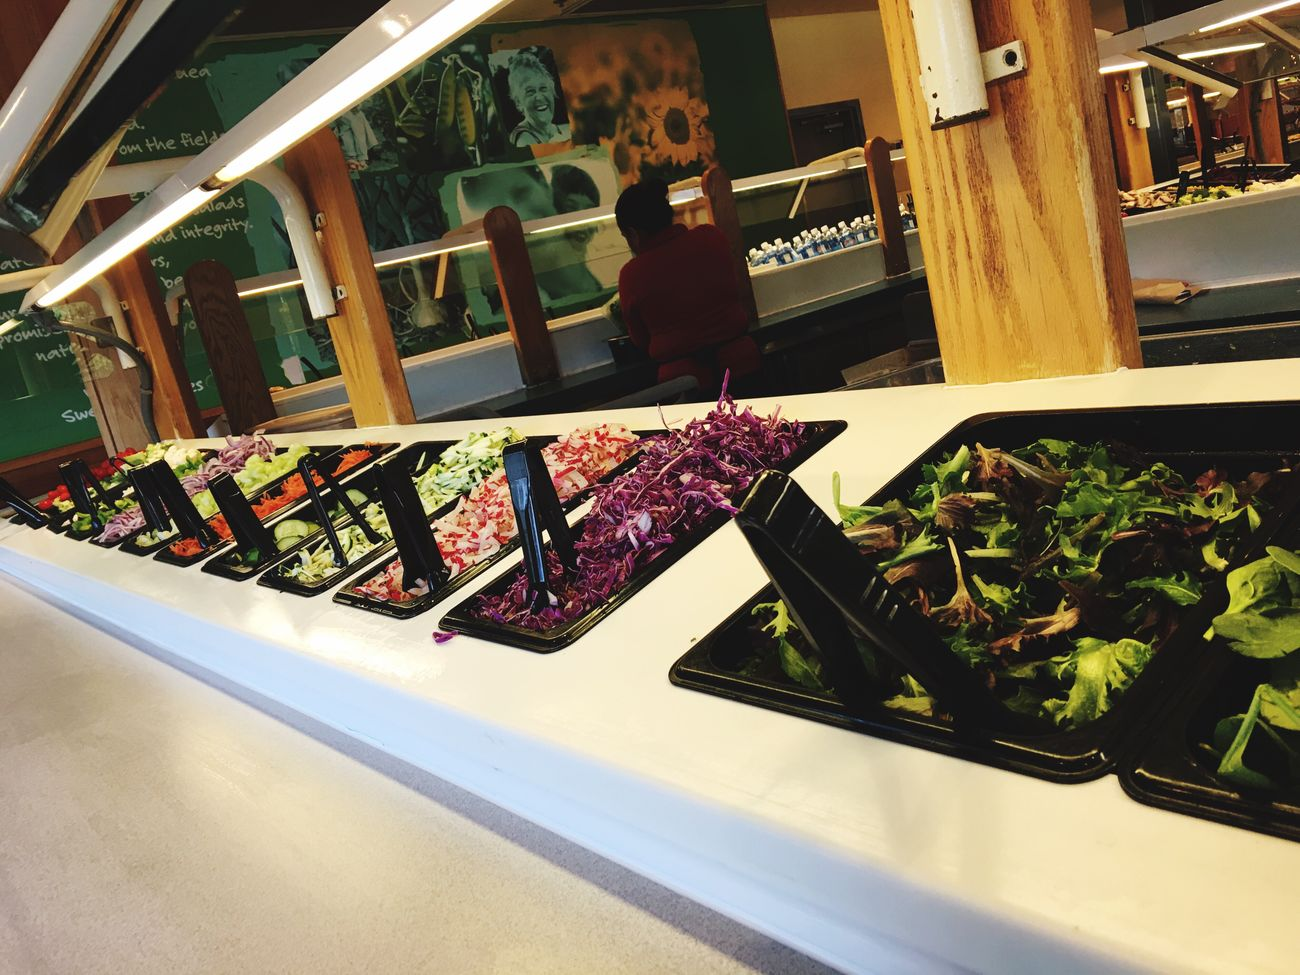 Salad Time Salad Bar Buffet Self Service Lunch Restaurant Food Restaurant Decor Restaurant